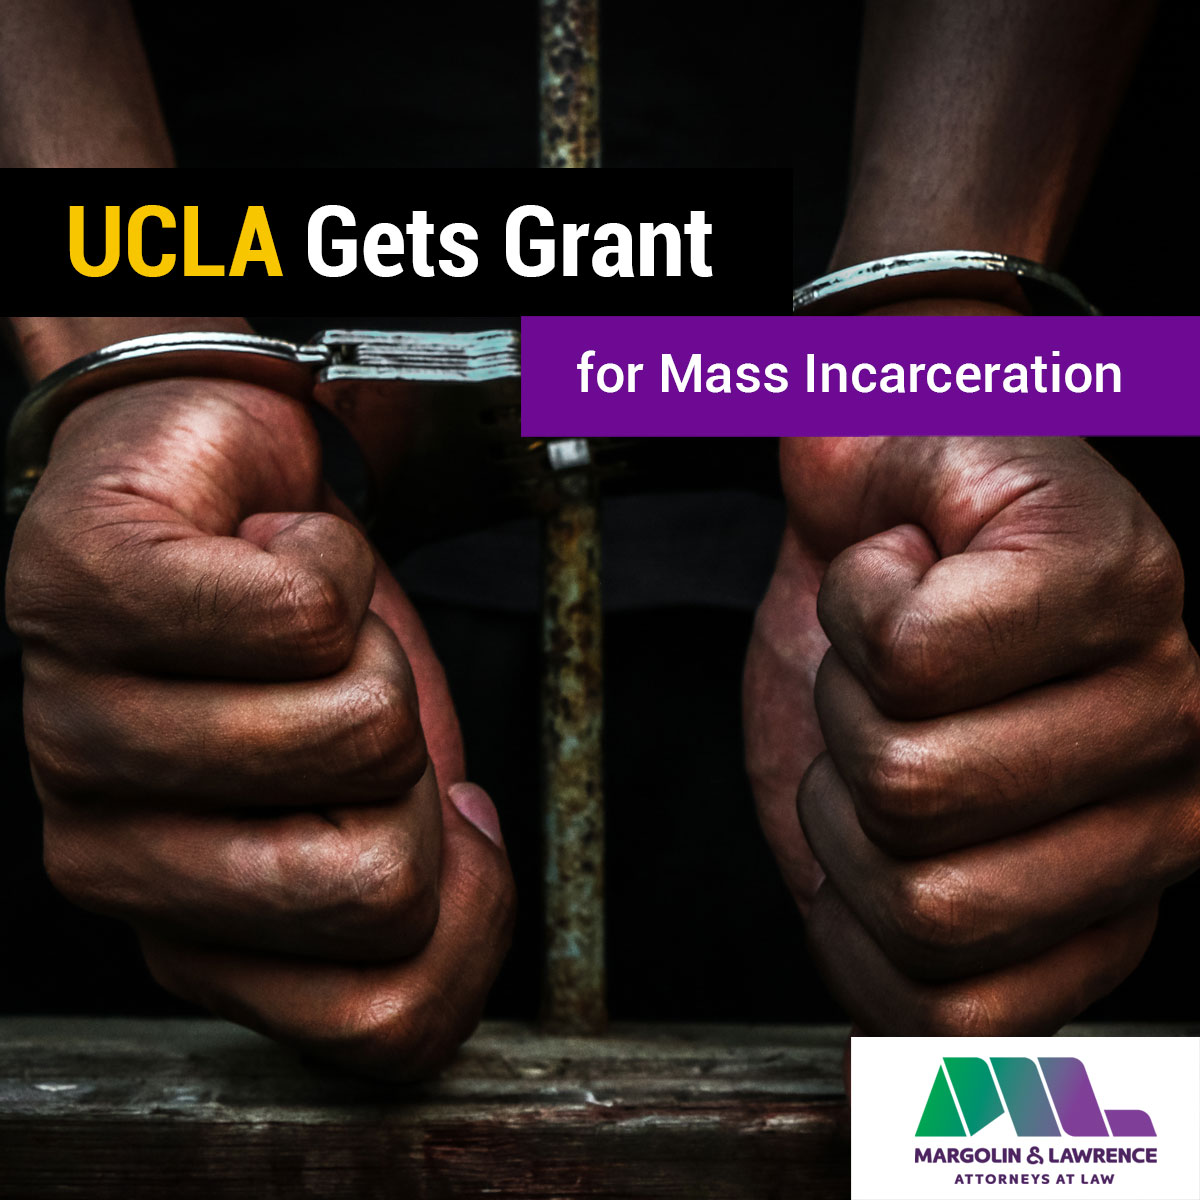 UCLA Gets Grant for Mass Incarceration Library